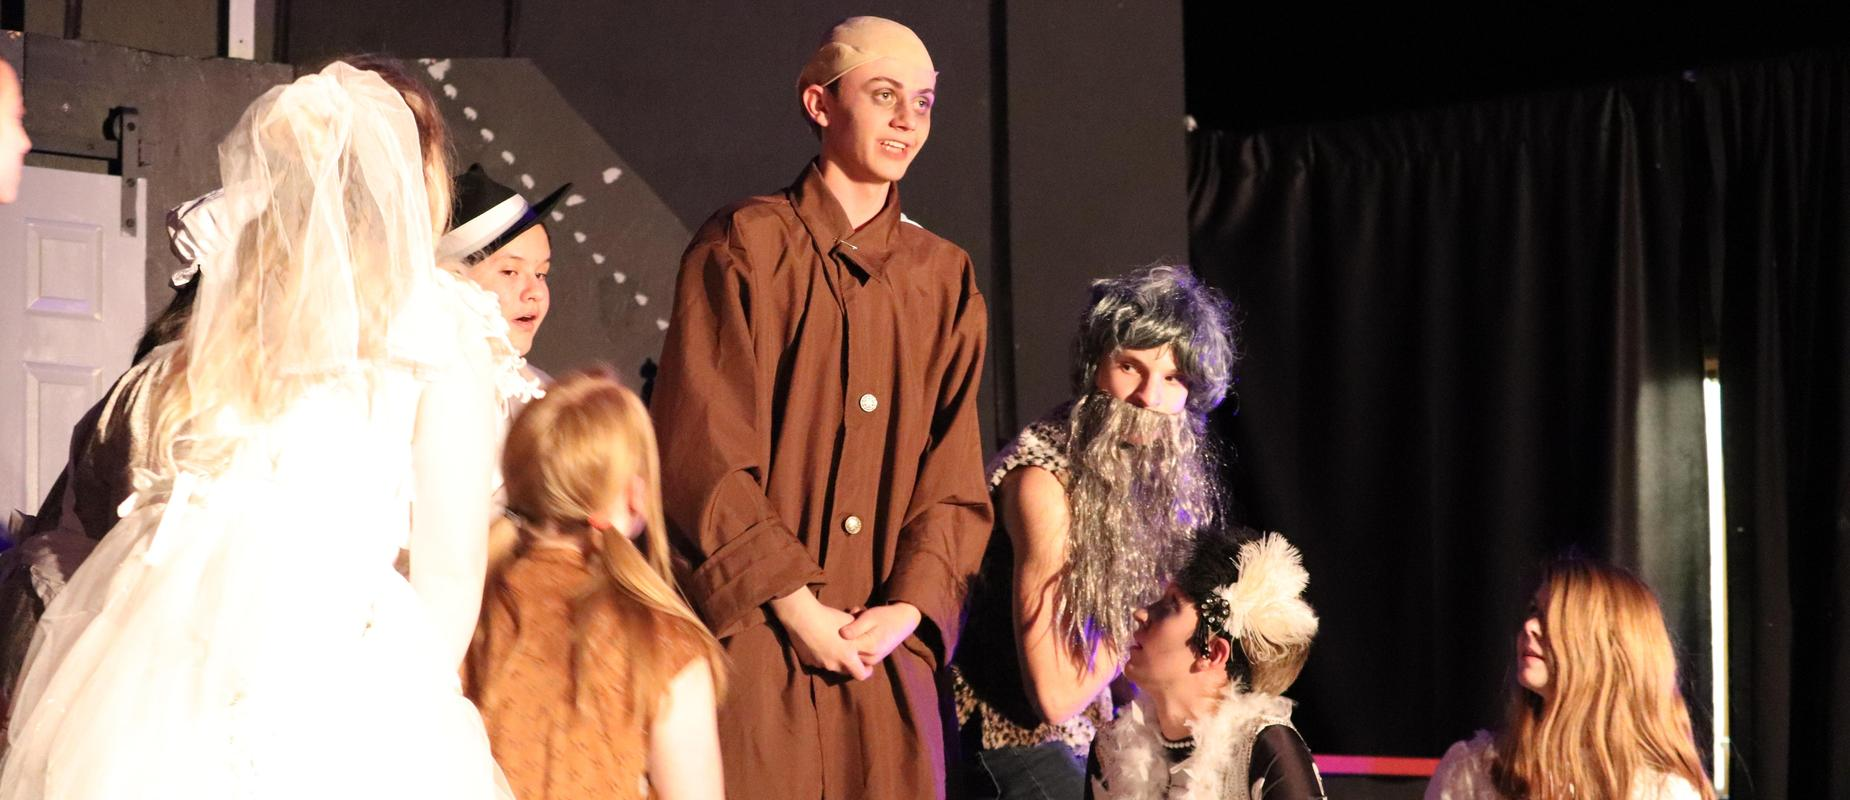 Jacob Lende and the Addams Family Drama Play